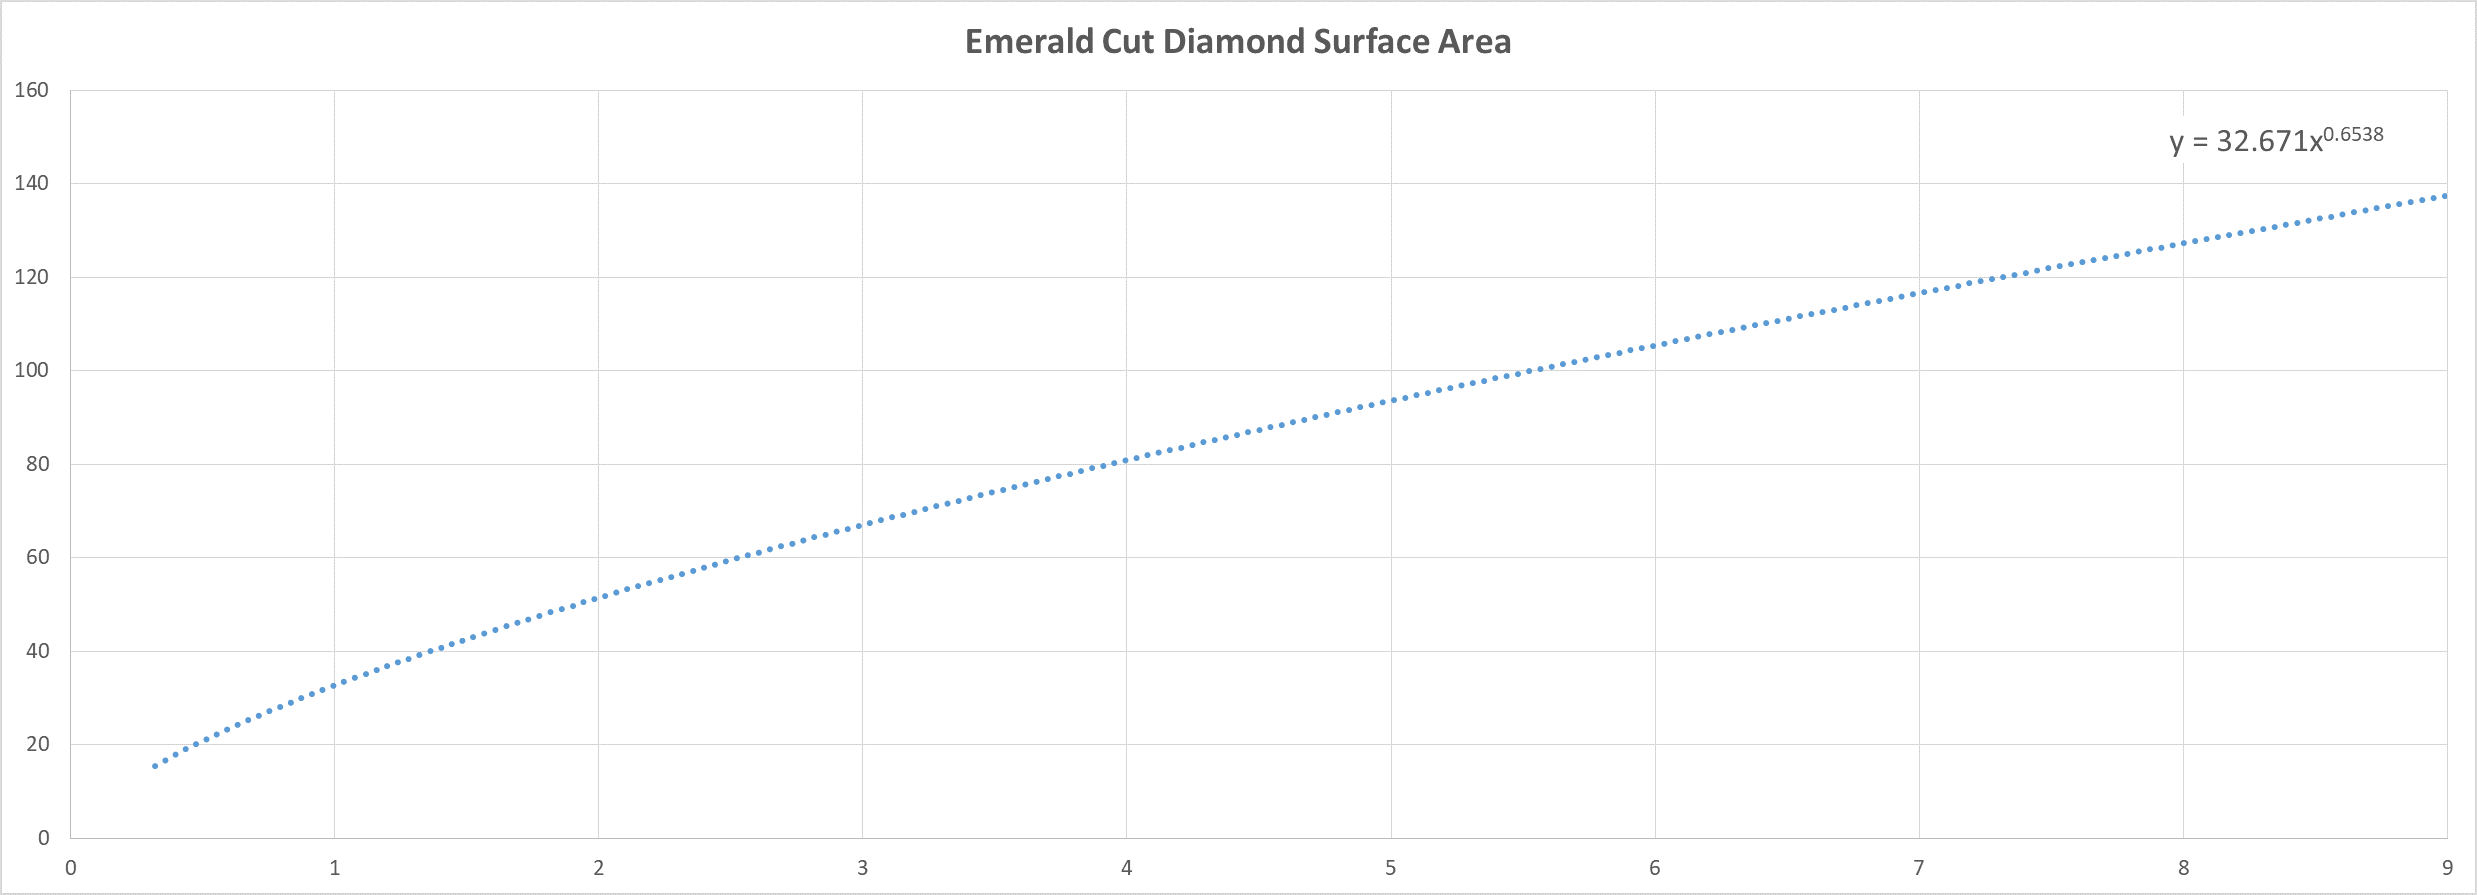 Emerald Diamond Carat Weight Versus Surface Area Chart